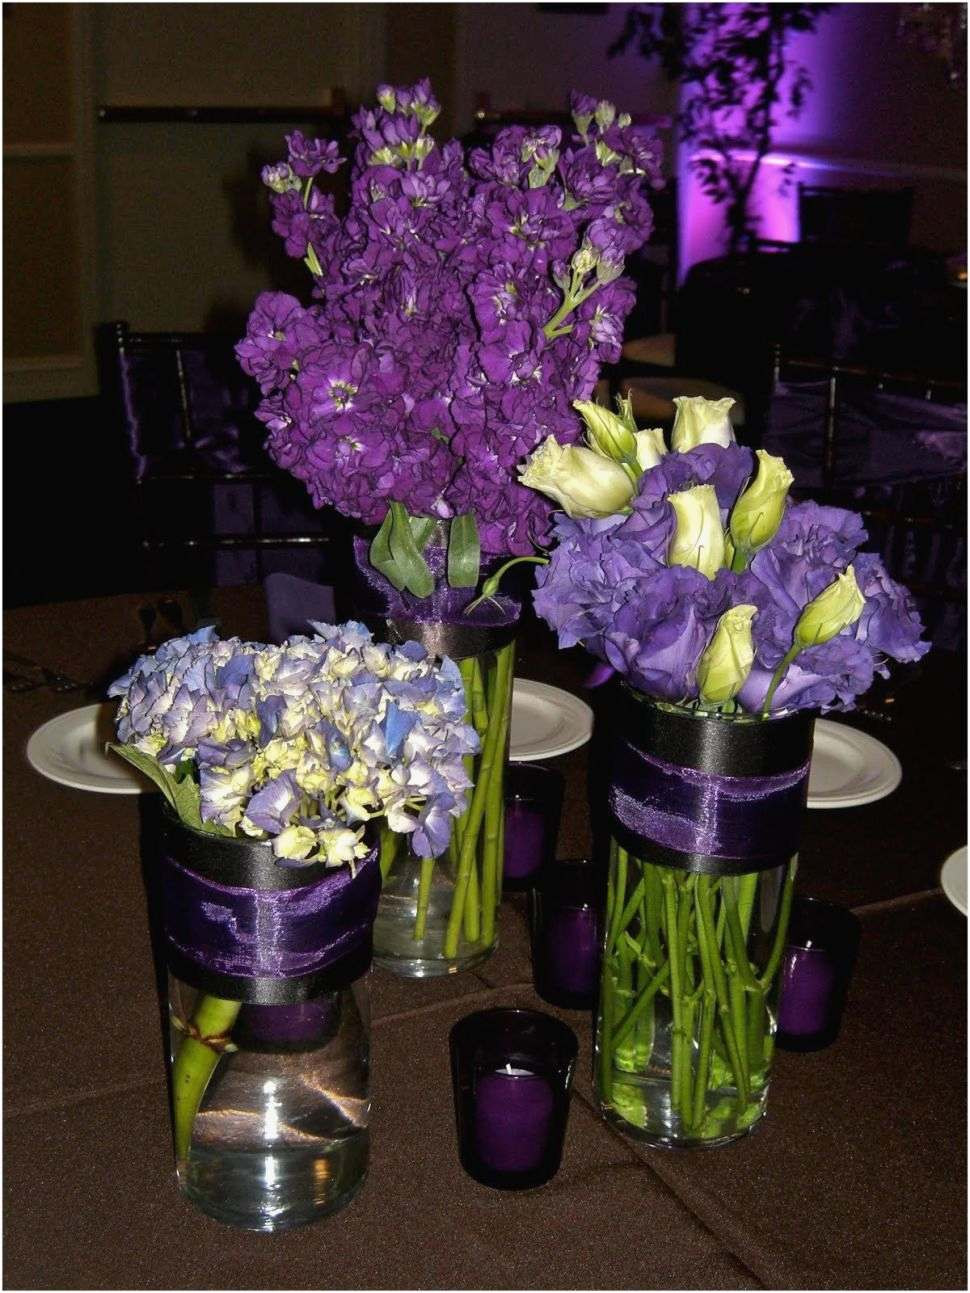 decorative flowers for floor vases of silk flowers concept cheap artificial flowers awesome flower with regard to silk flowers lovely purple silk flowers stupendous dsc 1329h vases purple previ 0d floor new design